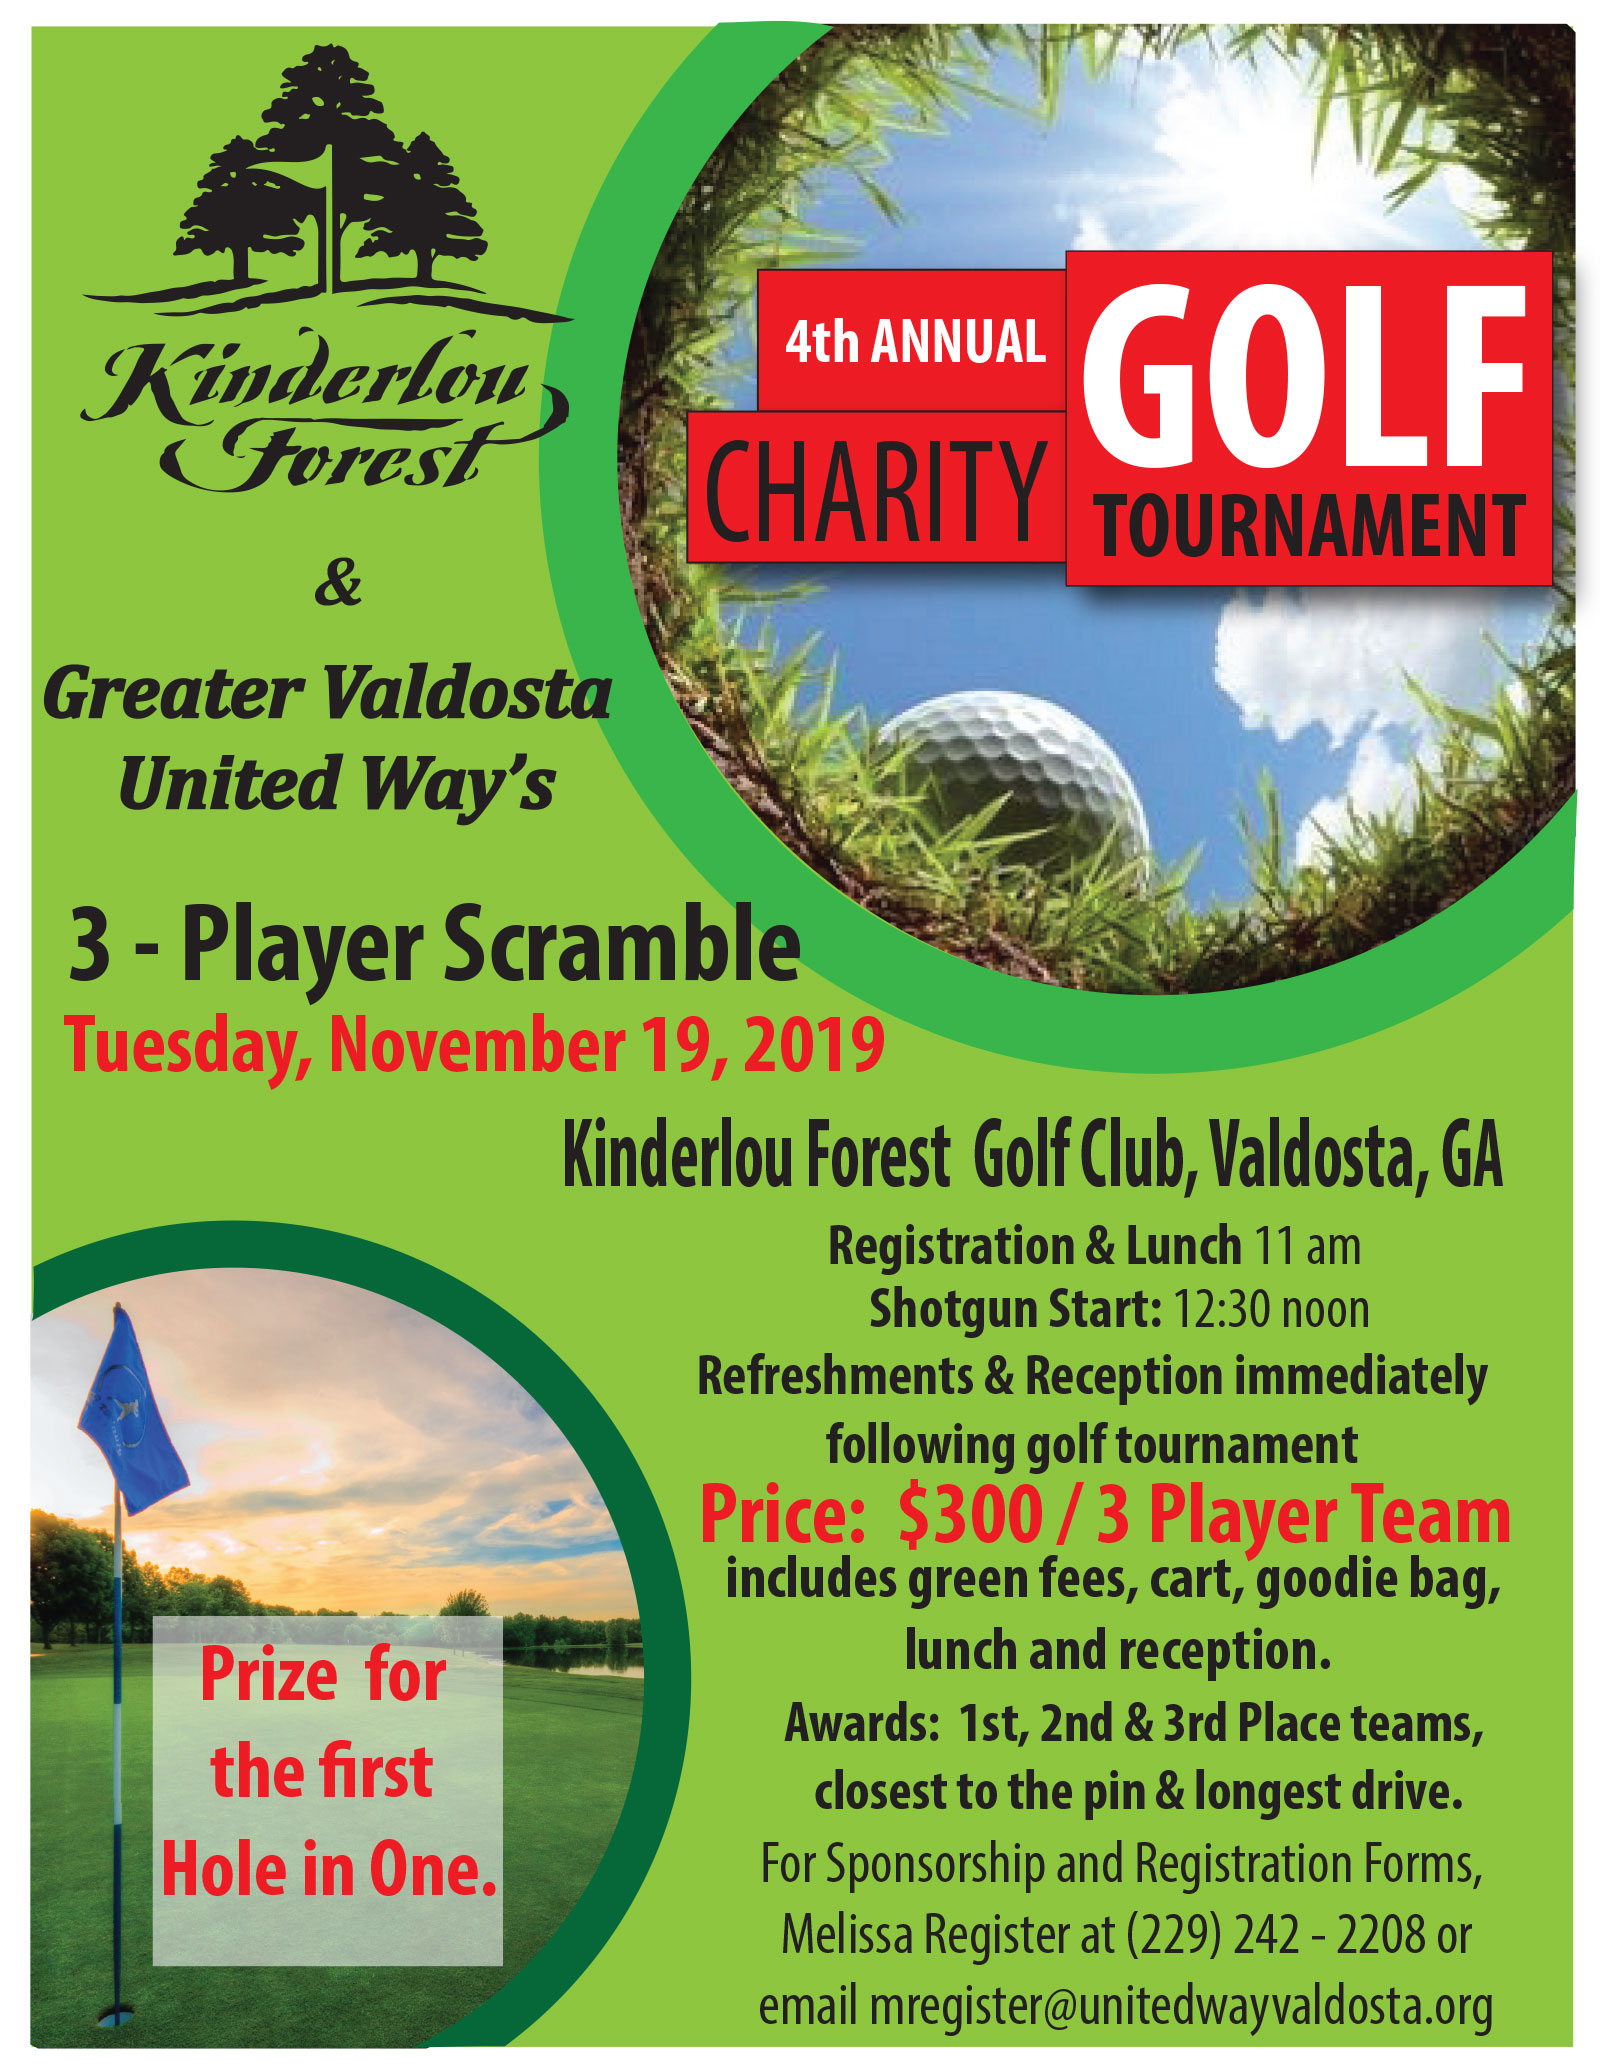 4th Annual Charity Golf Tournament Brochure